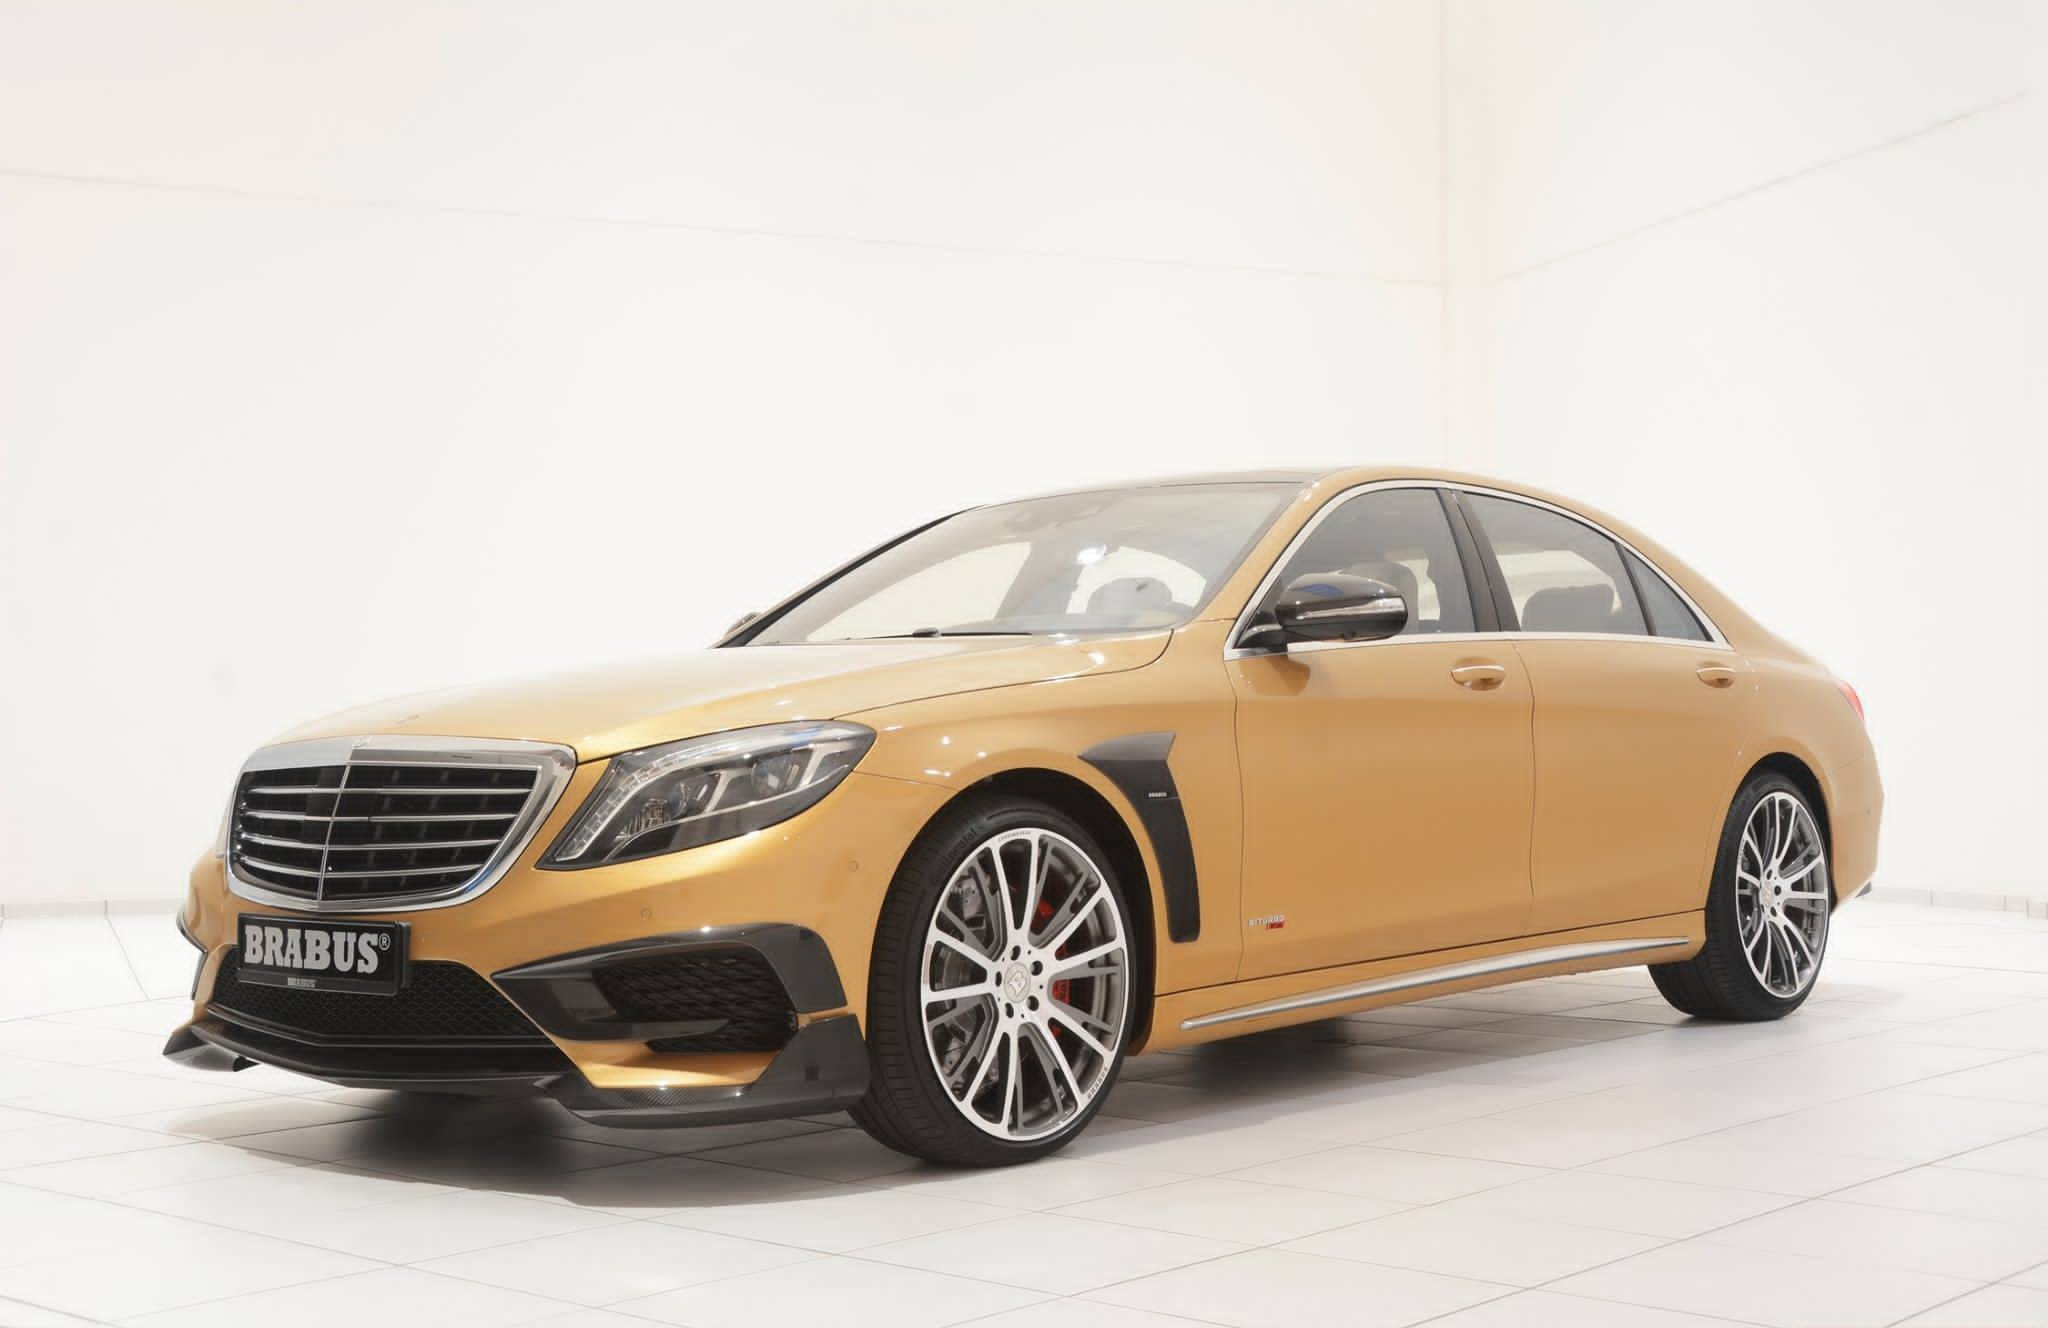 Brabus 850 mercedes s63 amg unveiled a for Mercedes benz 850